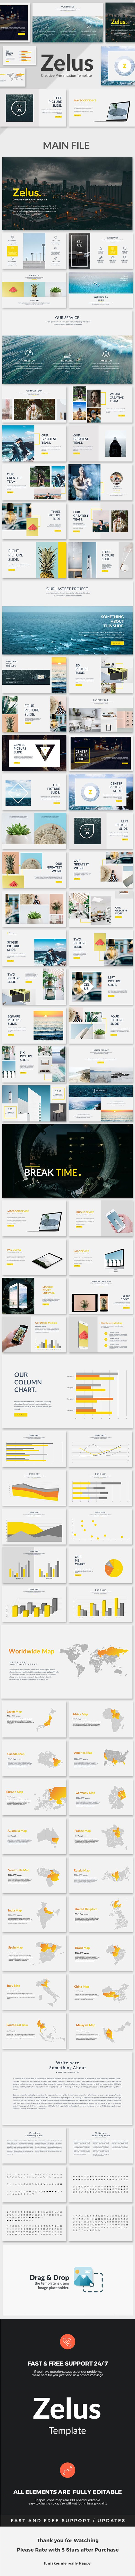 Zelus - #Creative Powerpoint #Template - Creative #PowerPoint ...